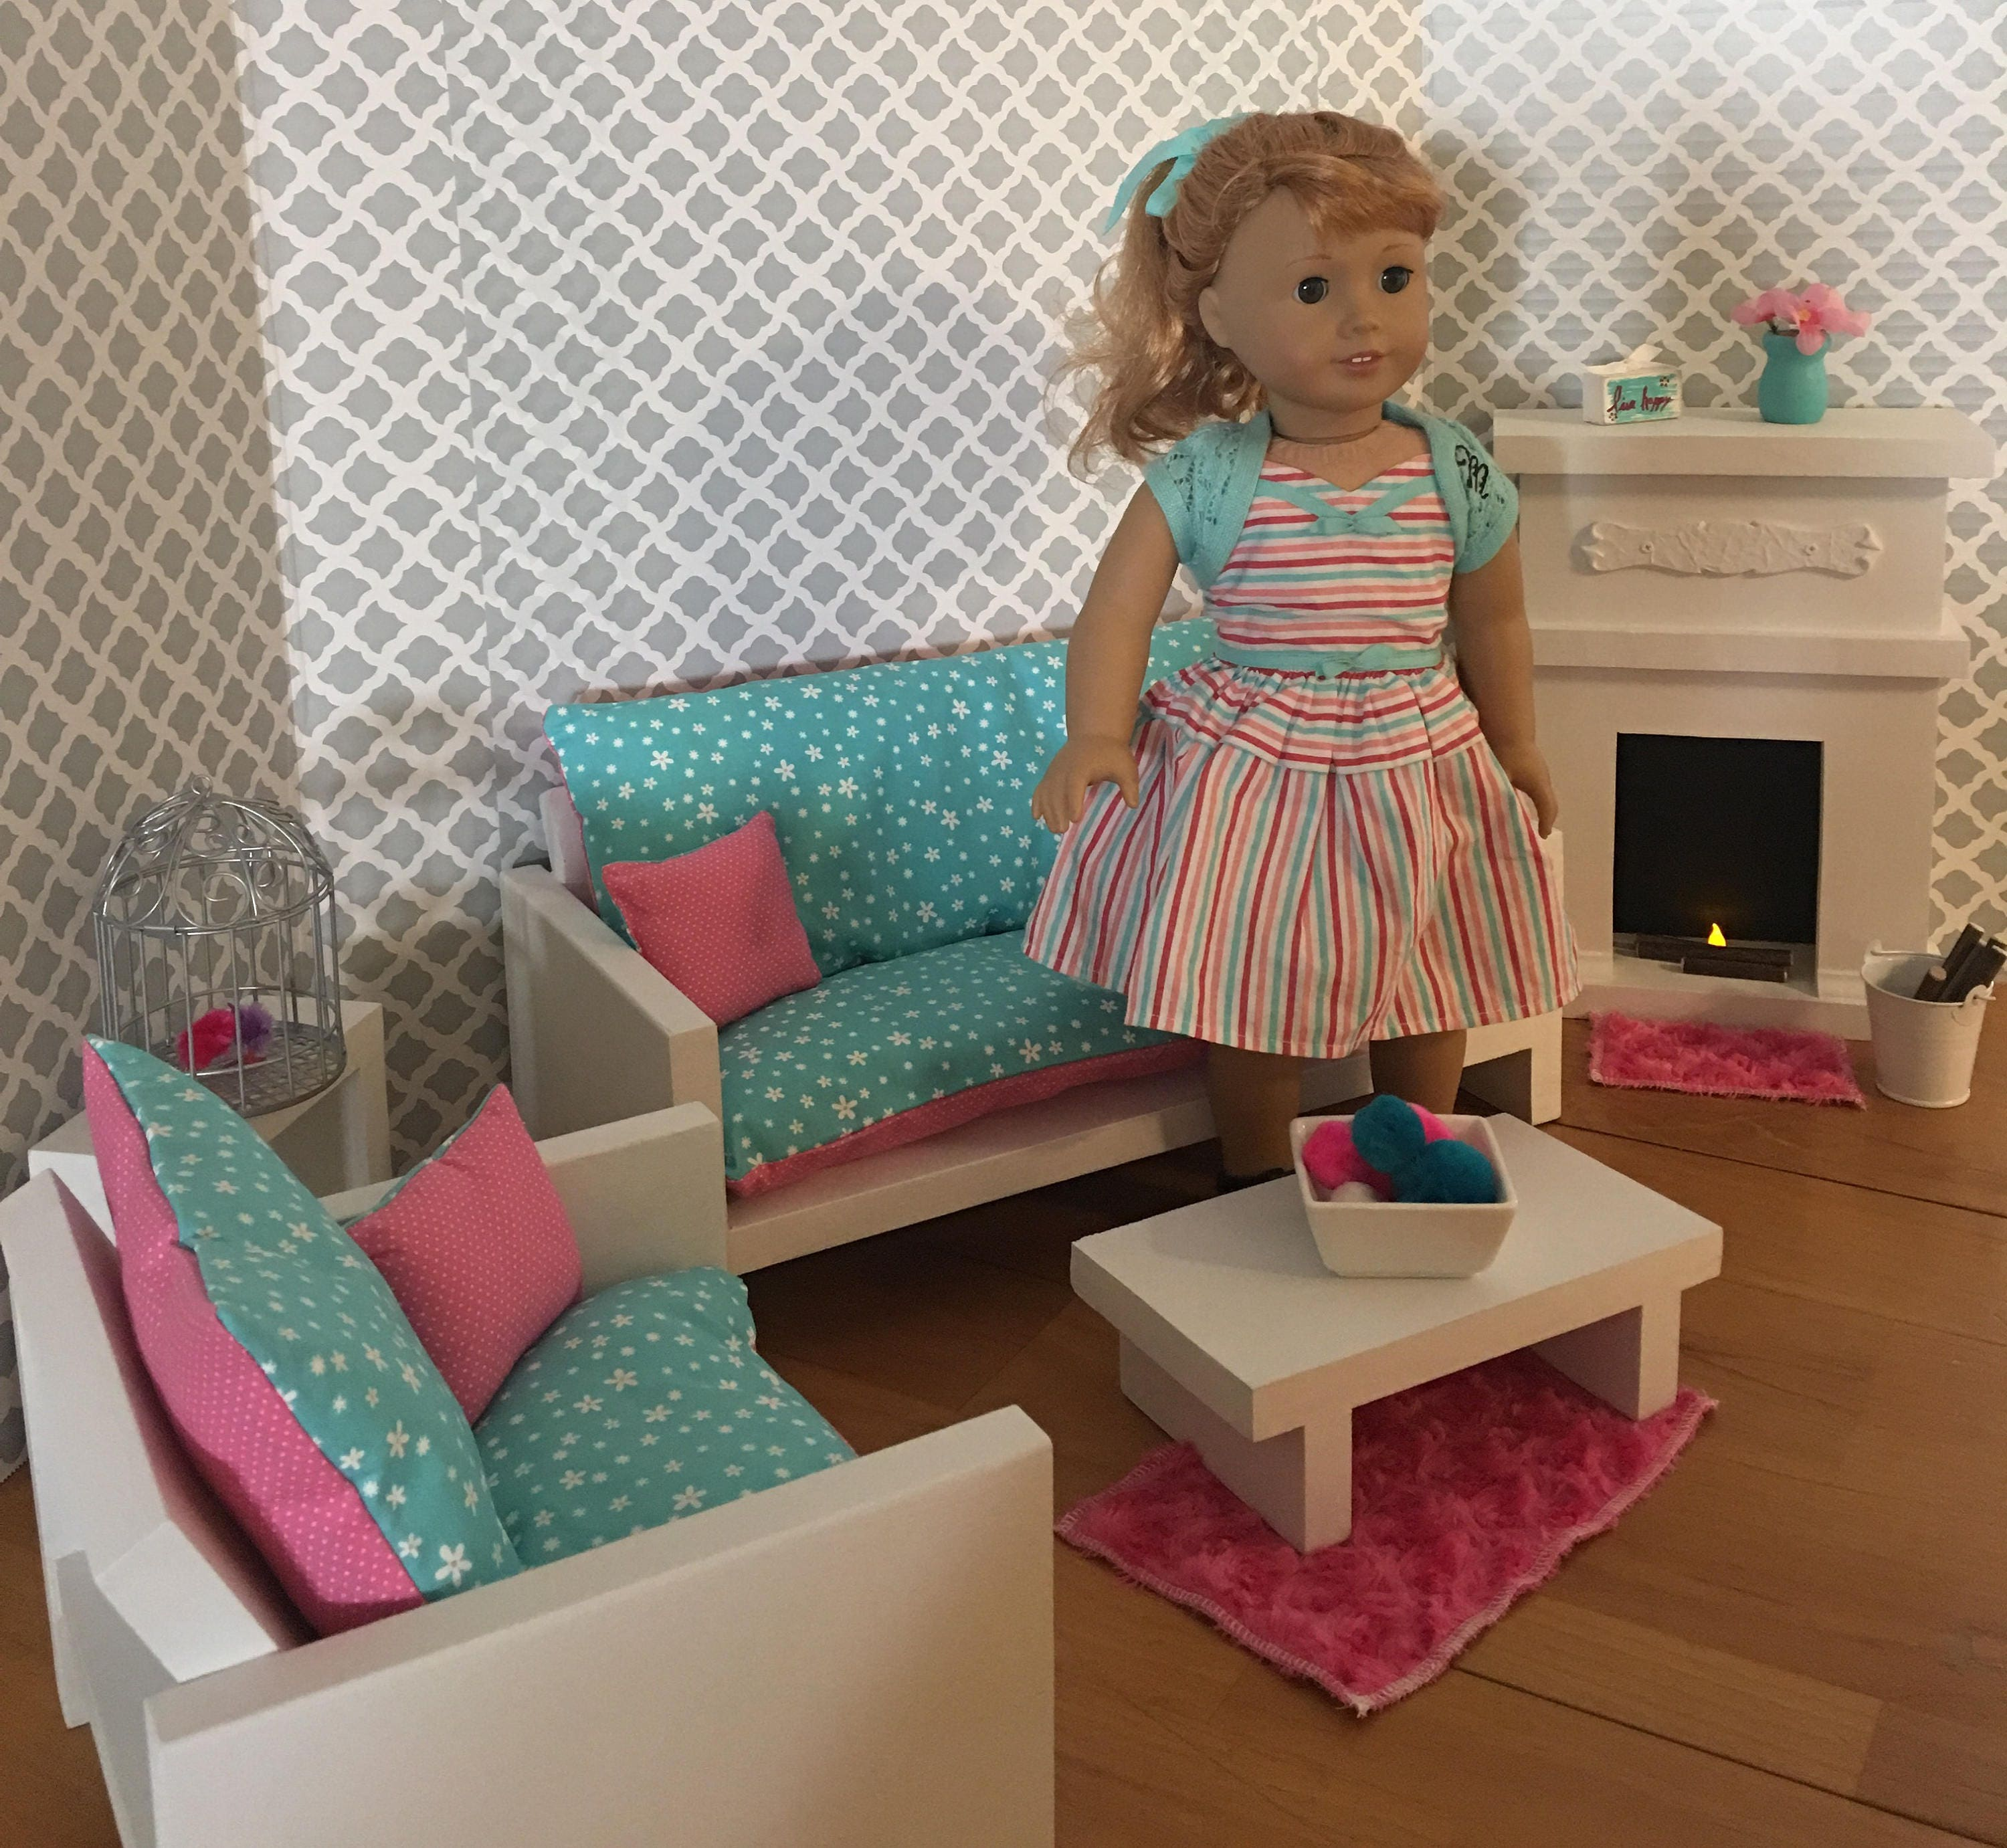 Living Room Set For 18 Dolls Fits The American Girl Dolls